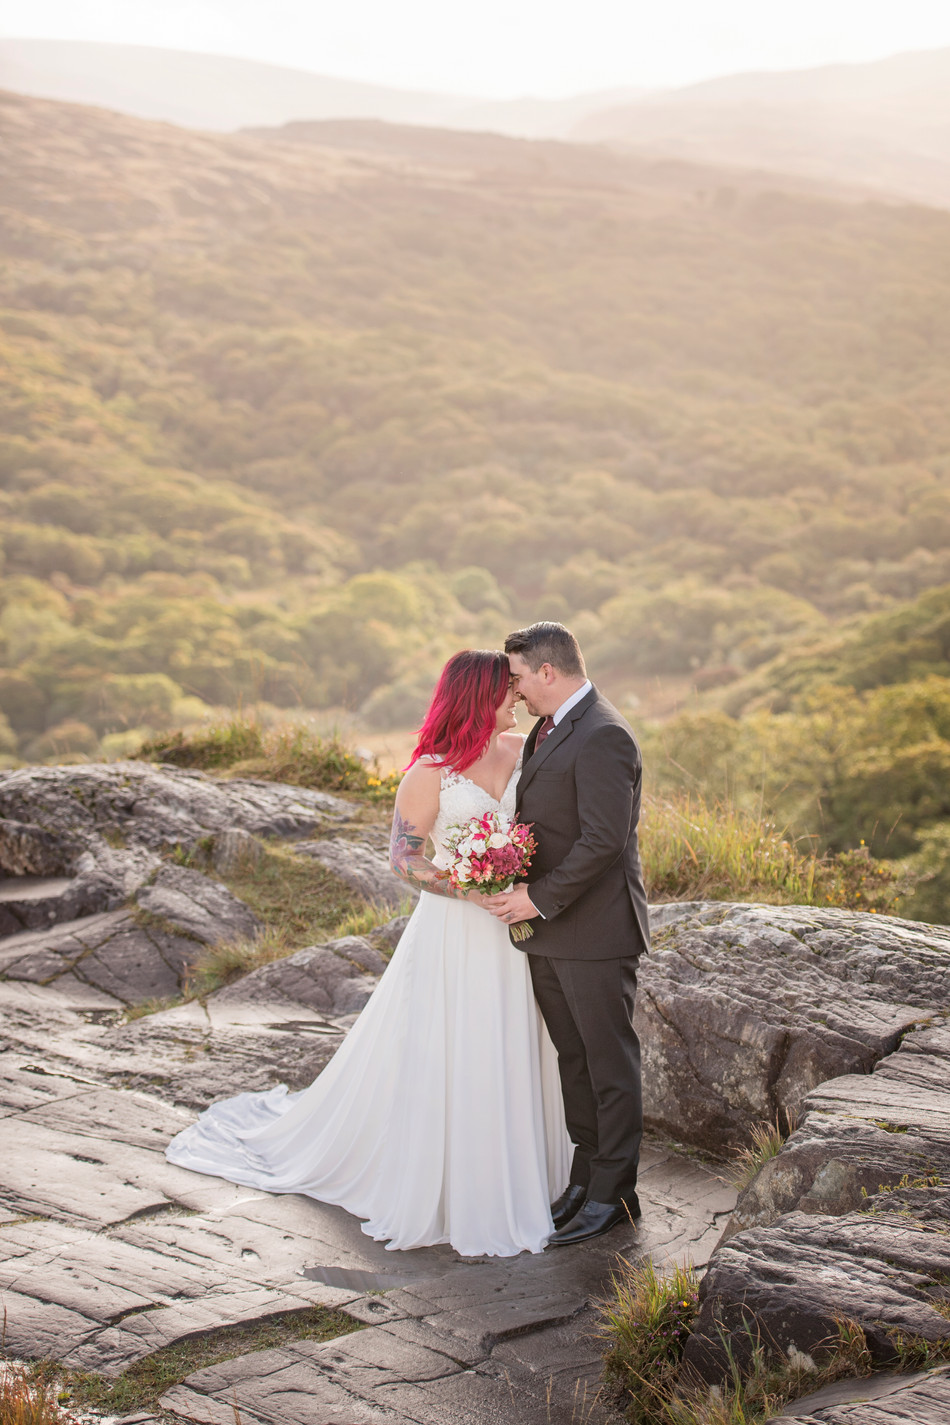 Allie and Joe: An Irish Dream Renewal | Ring of Kerry, Ireland | Destination Wedding